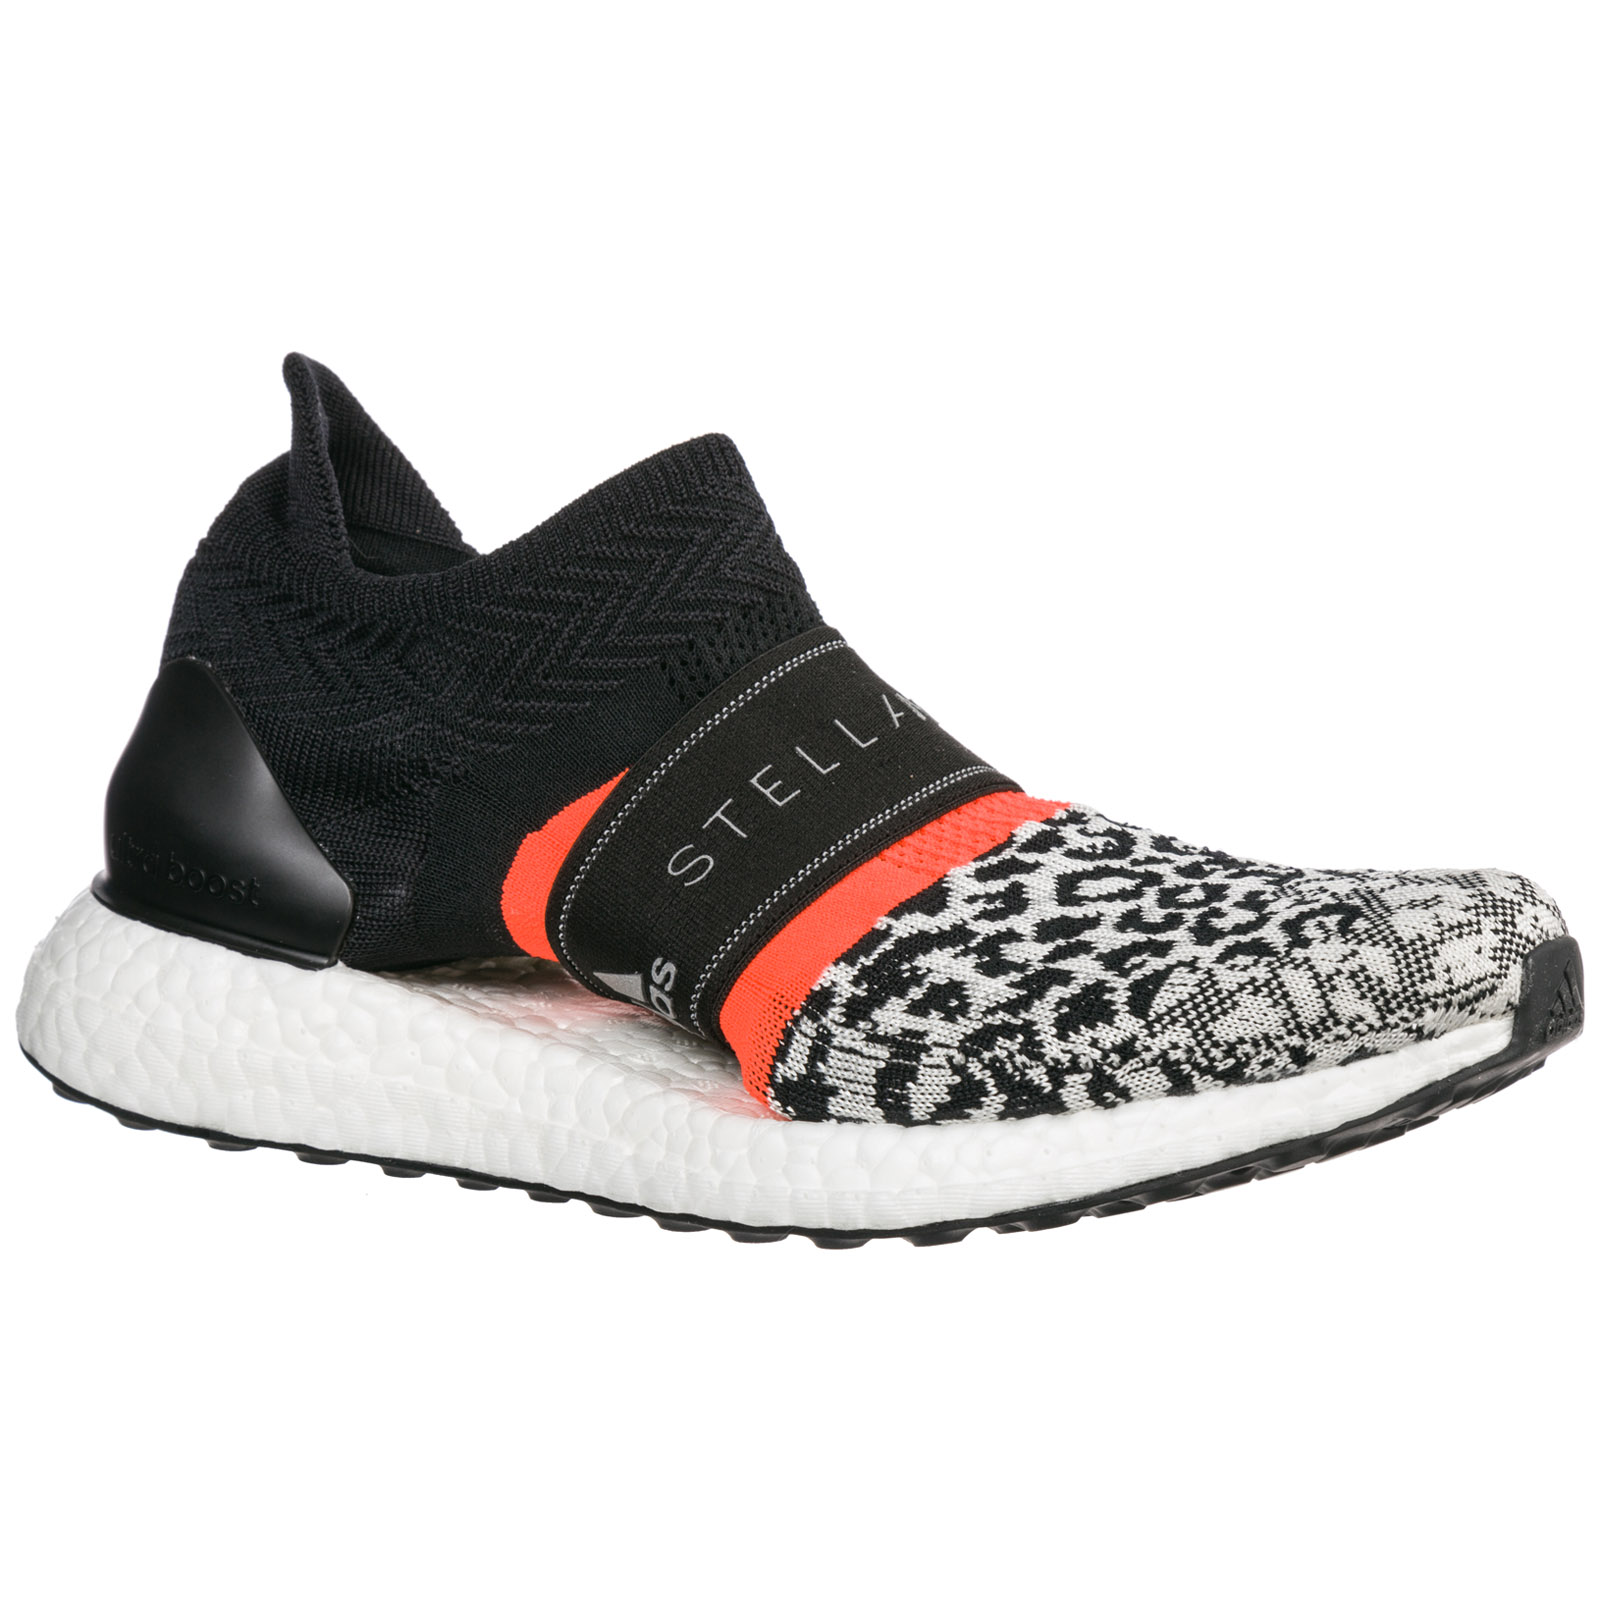 new product 1b38d 4787e Scarpe sneakers donna running ultraboost x 3d